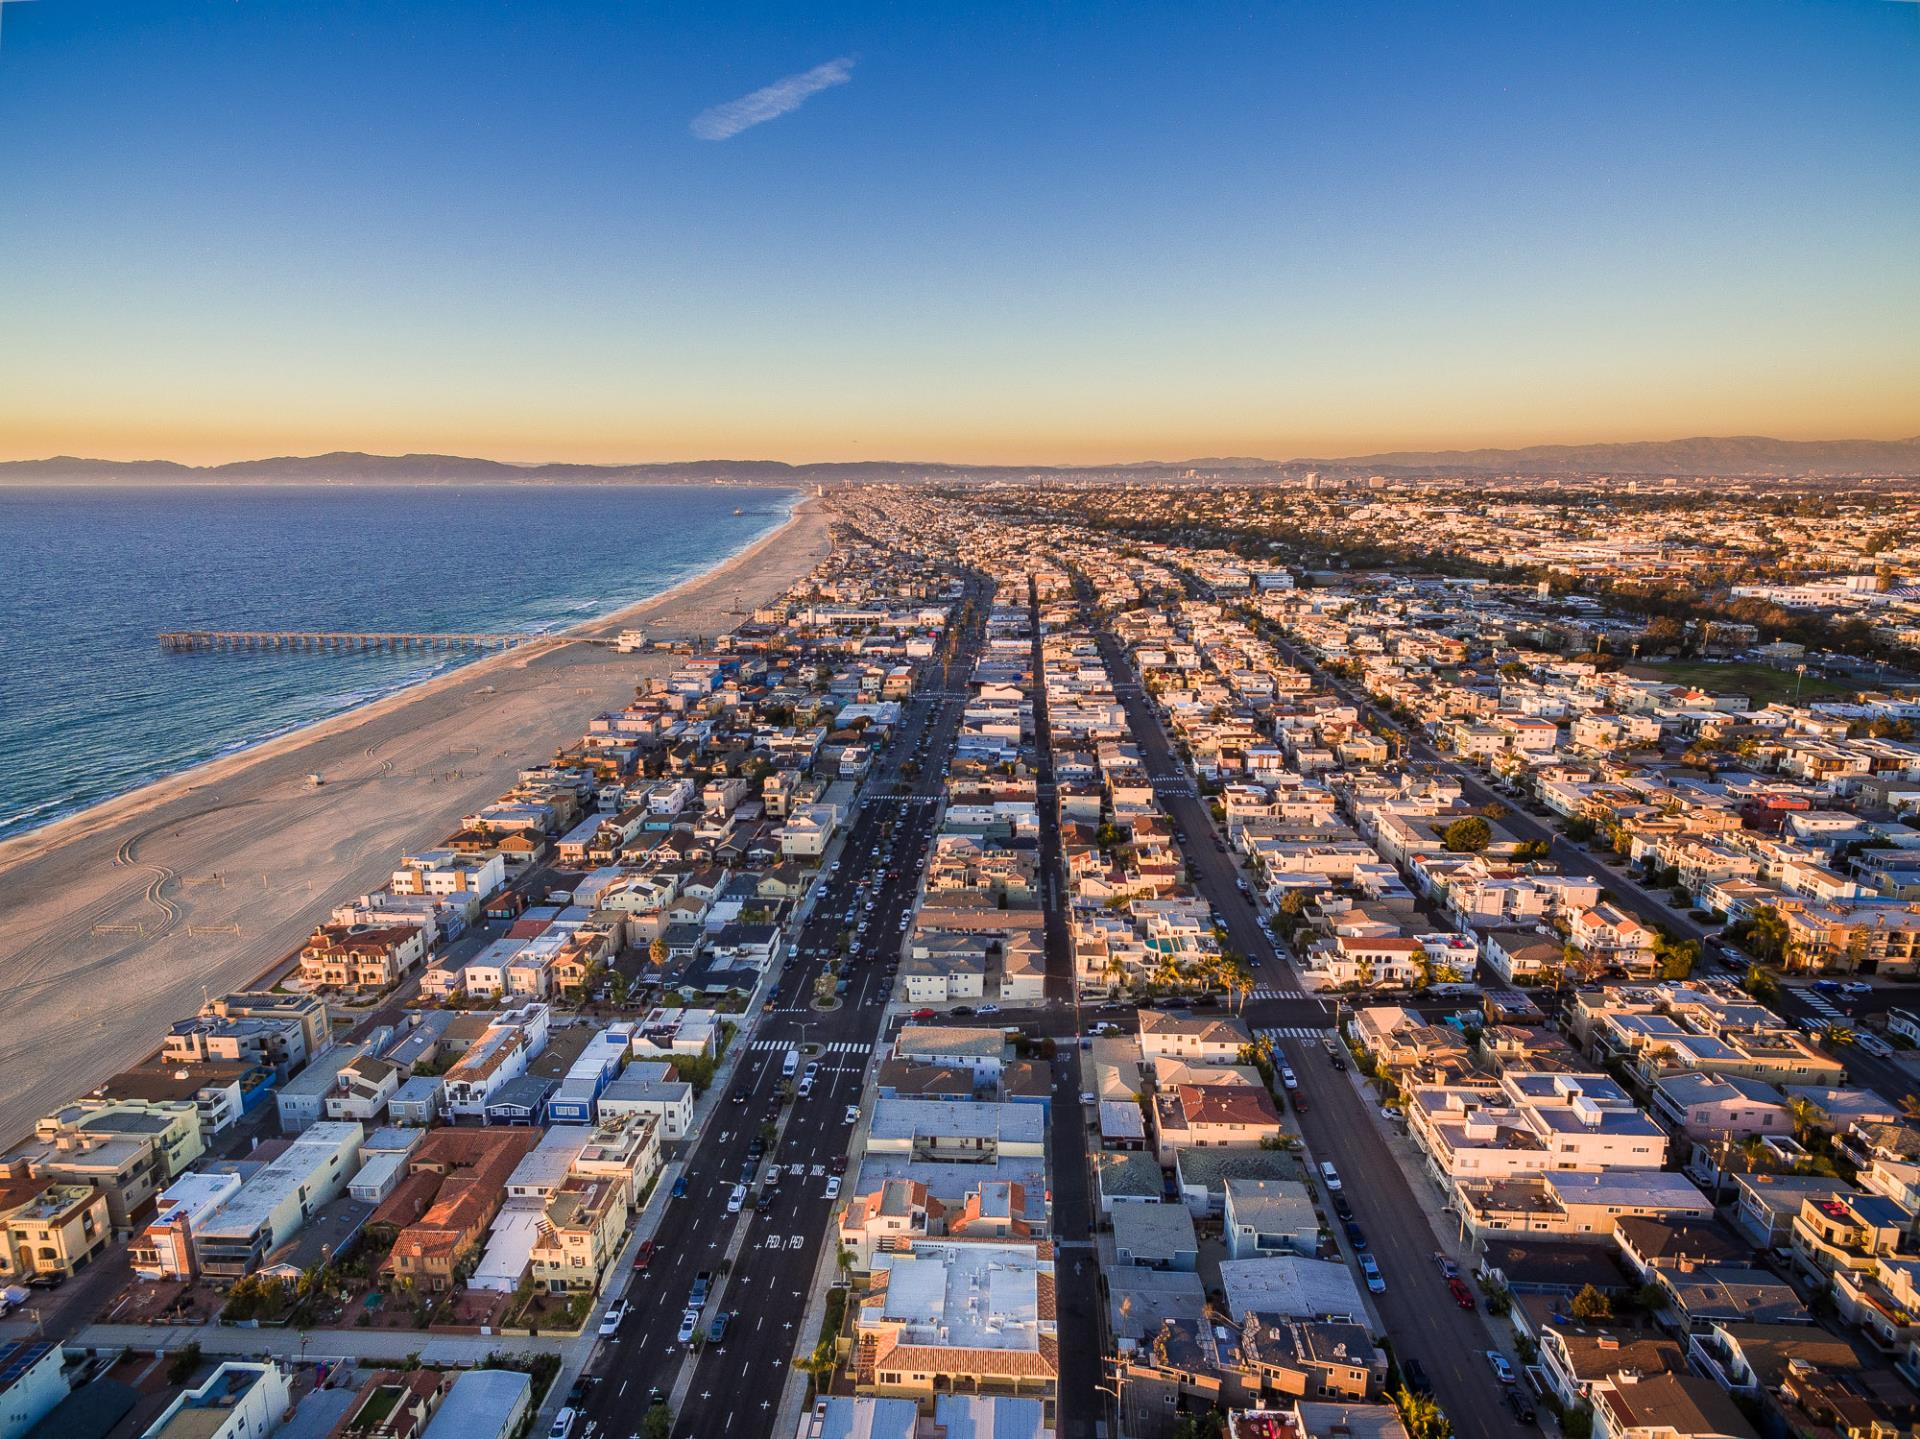 City of Hermosa Beach Daily COVID-19 Update for 3.28.20